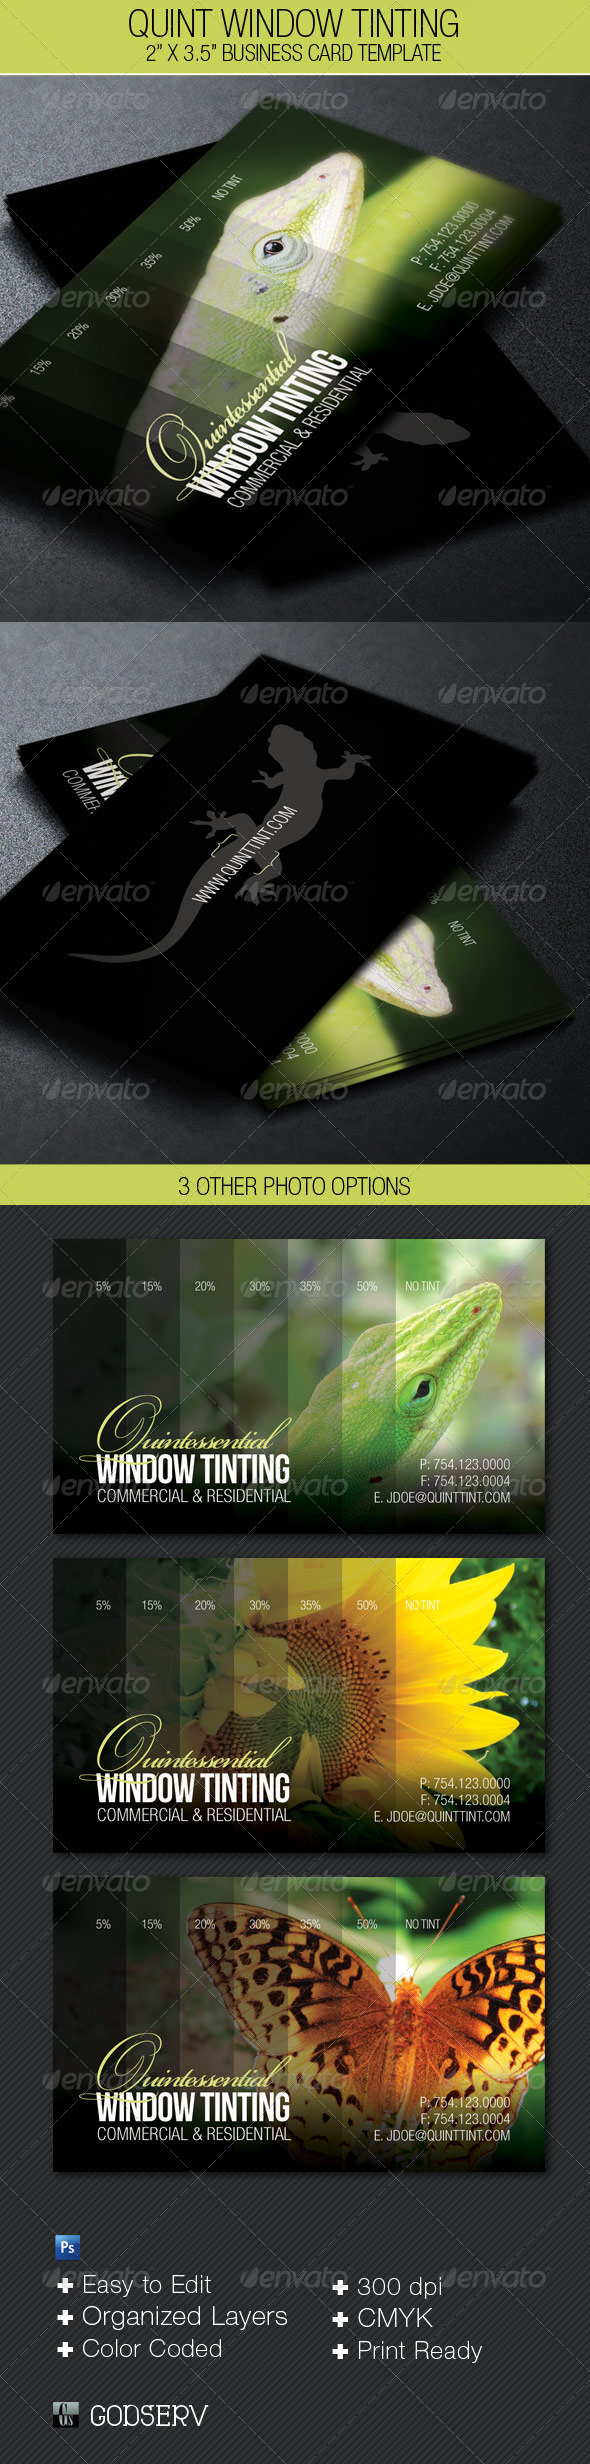 Quint Window Tinting Business Card Template - Industry Specific Business Cards